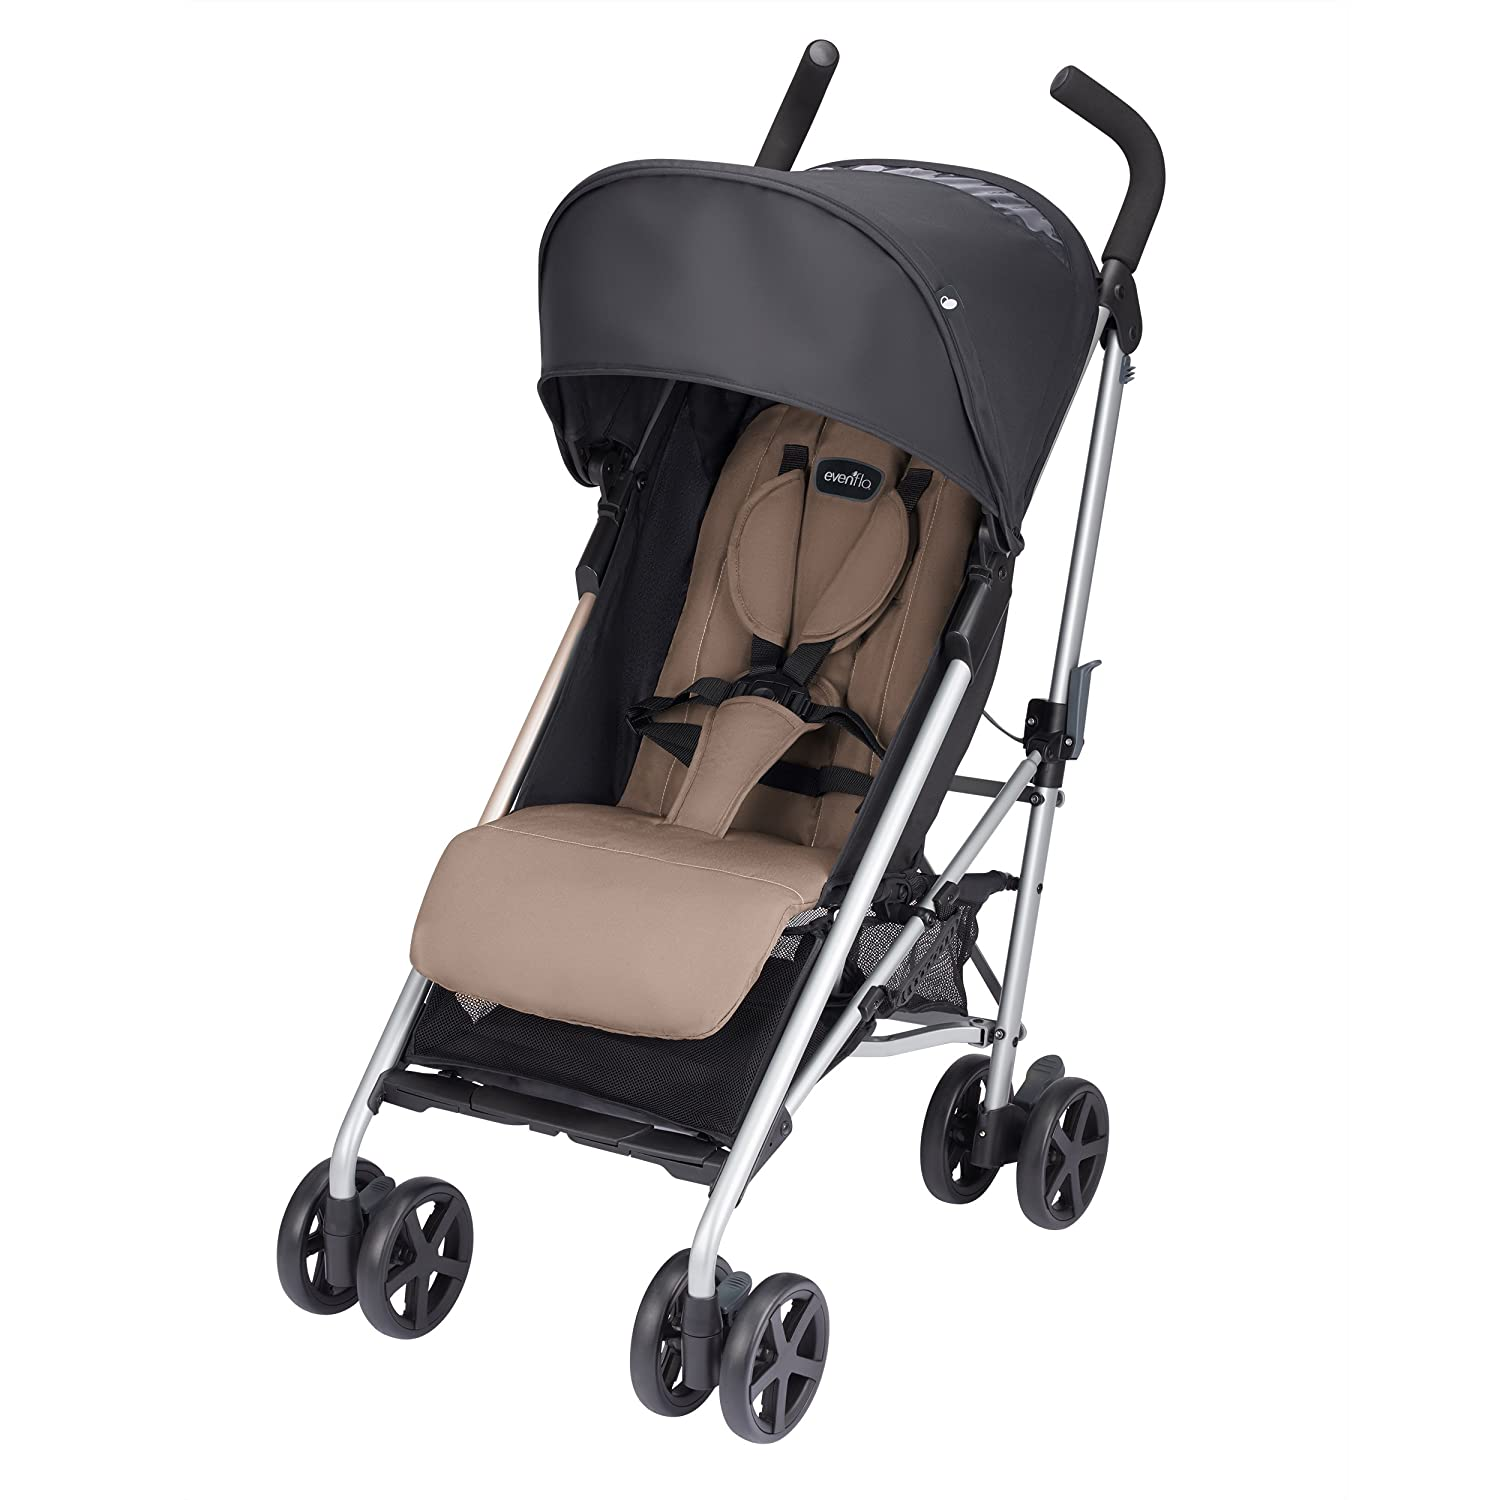 Evenflo Minno Lightweight Stroller, Mochaccino Brown 17922138